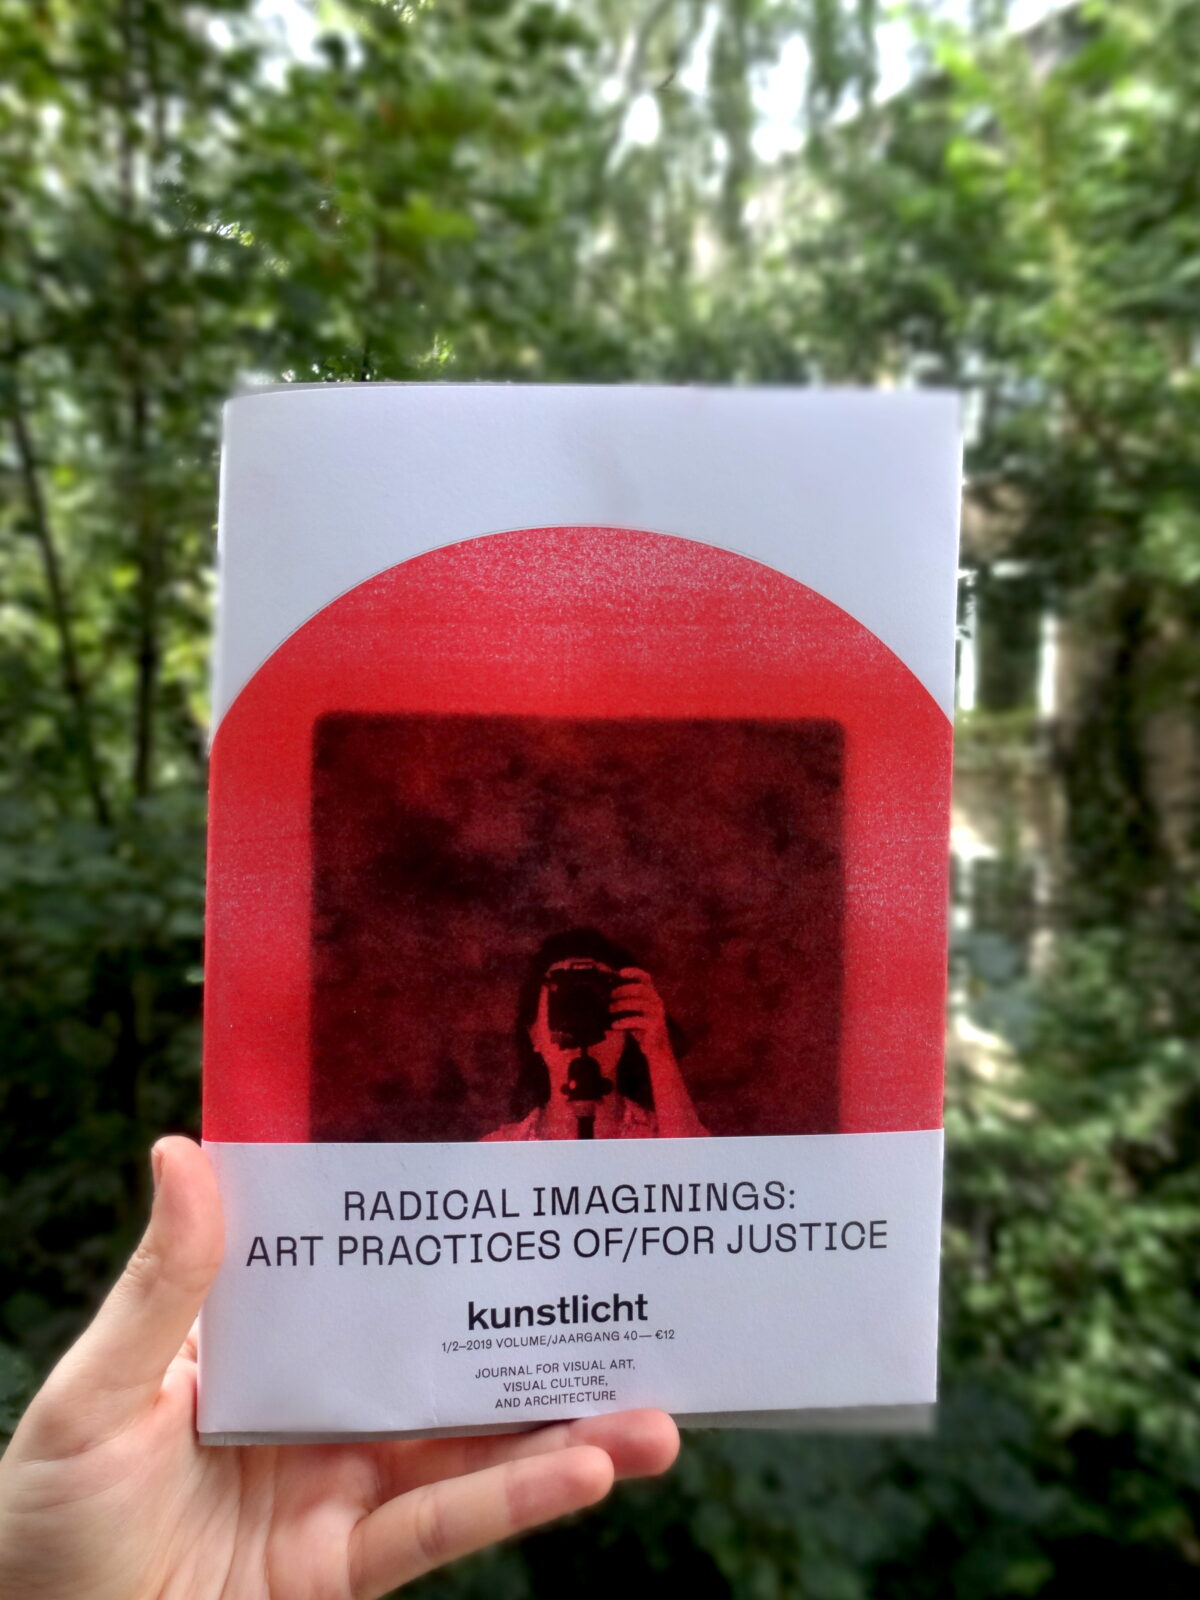 VOL. 40 NO. 1-2, 2019, RADICAL IMAGININGS: ART PRACTICES OF/FOR JUSTICE